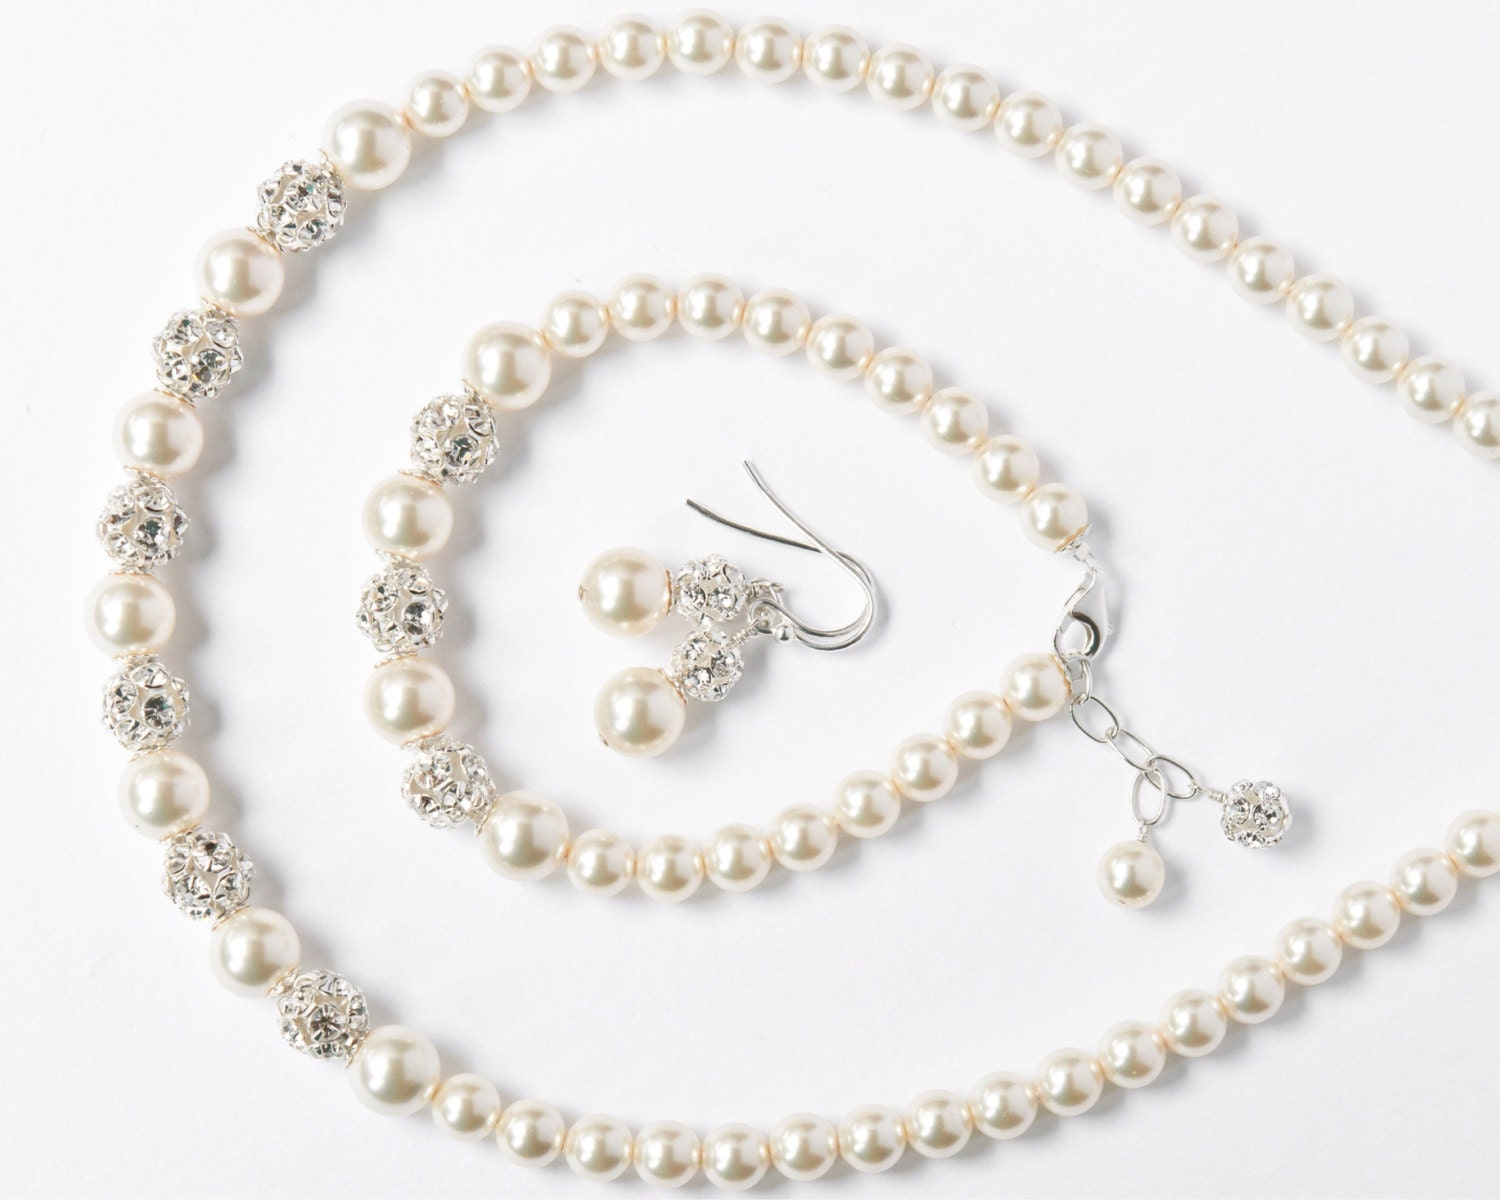 Bride Jewelry Set Pearl Jewelry Set for the Bride Art Deco